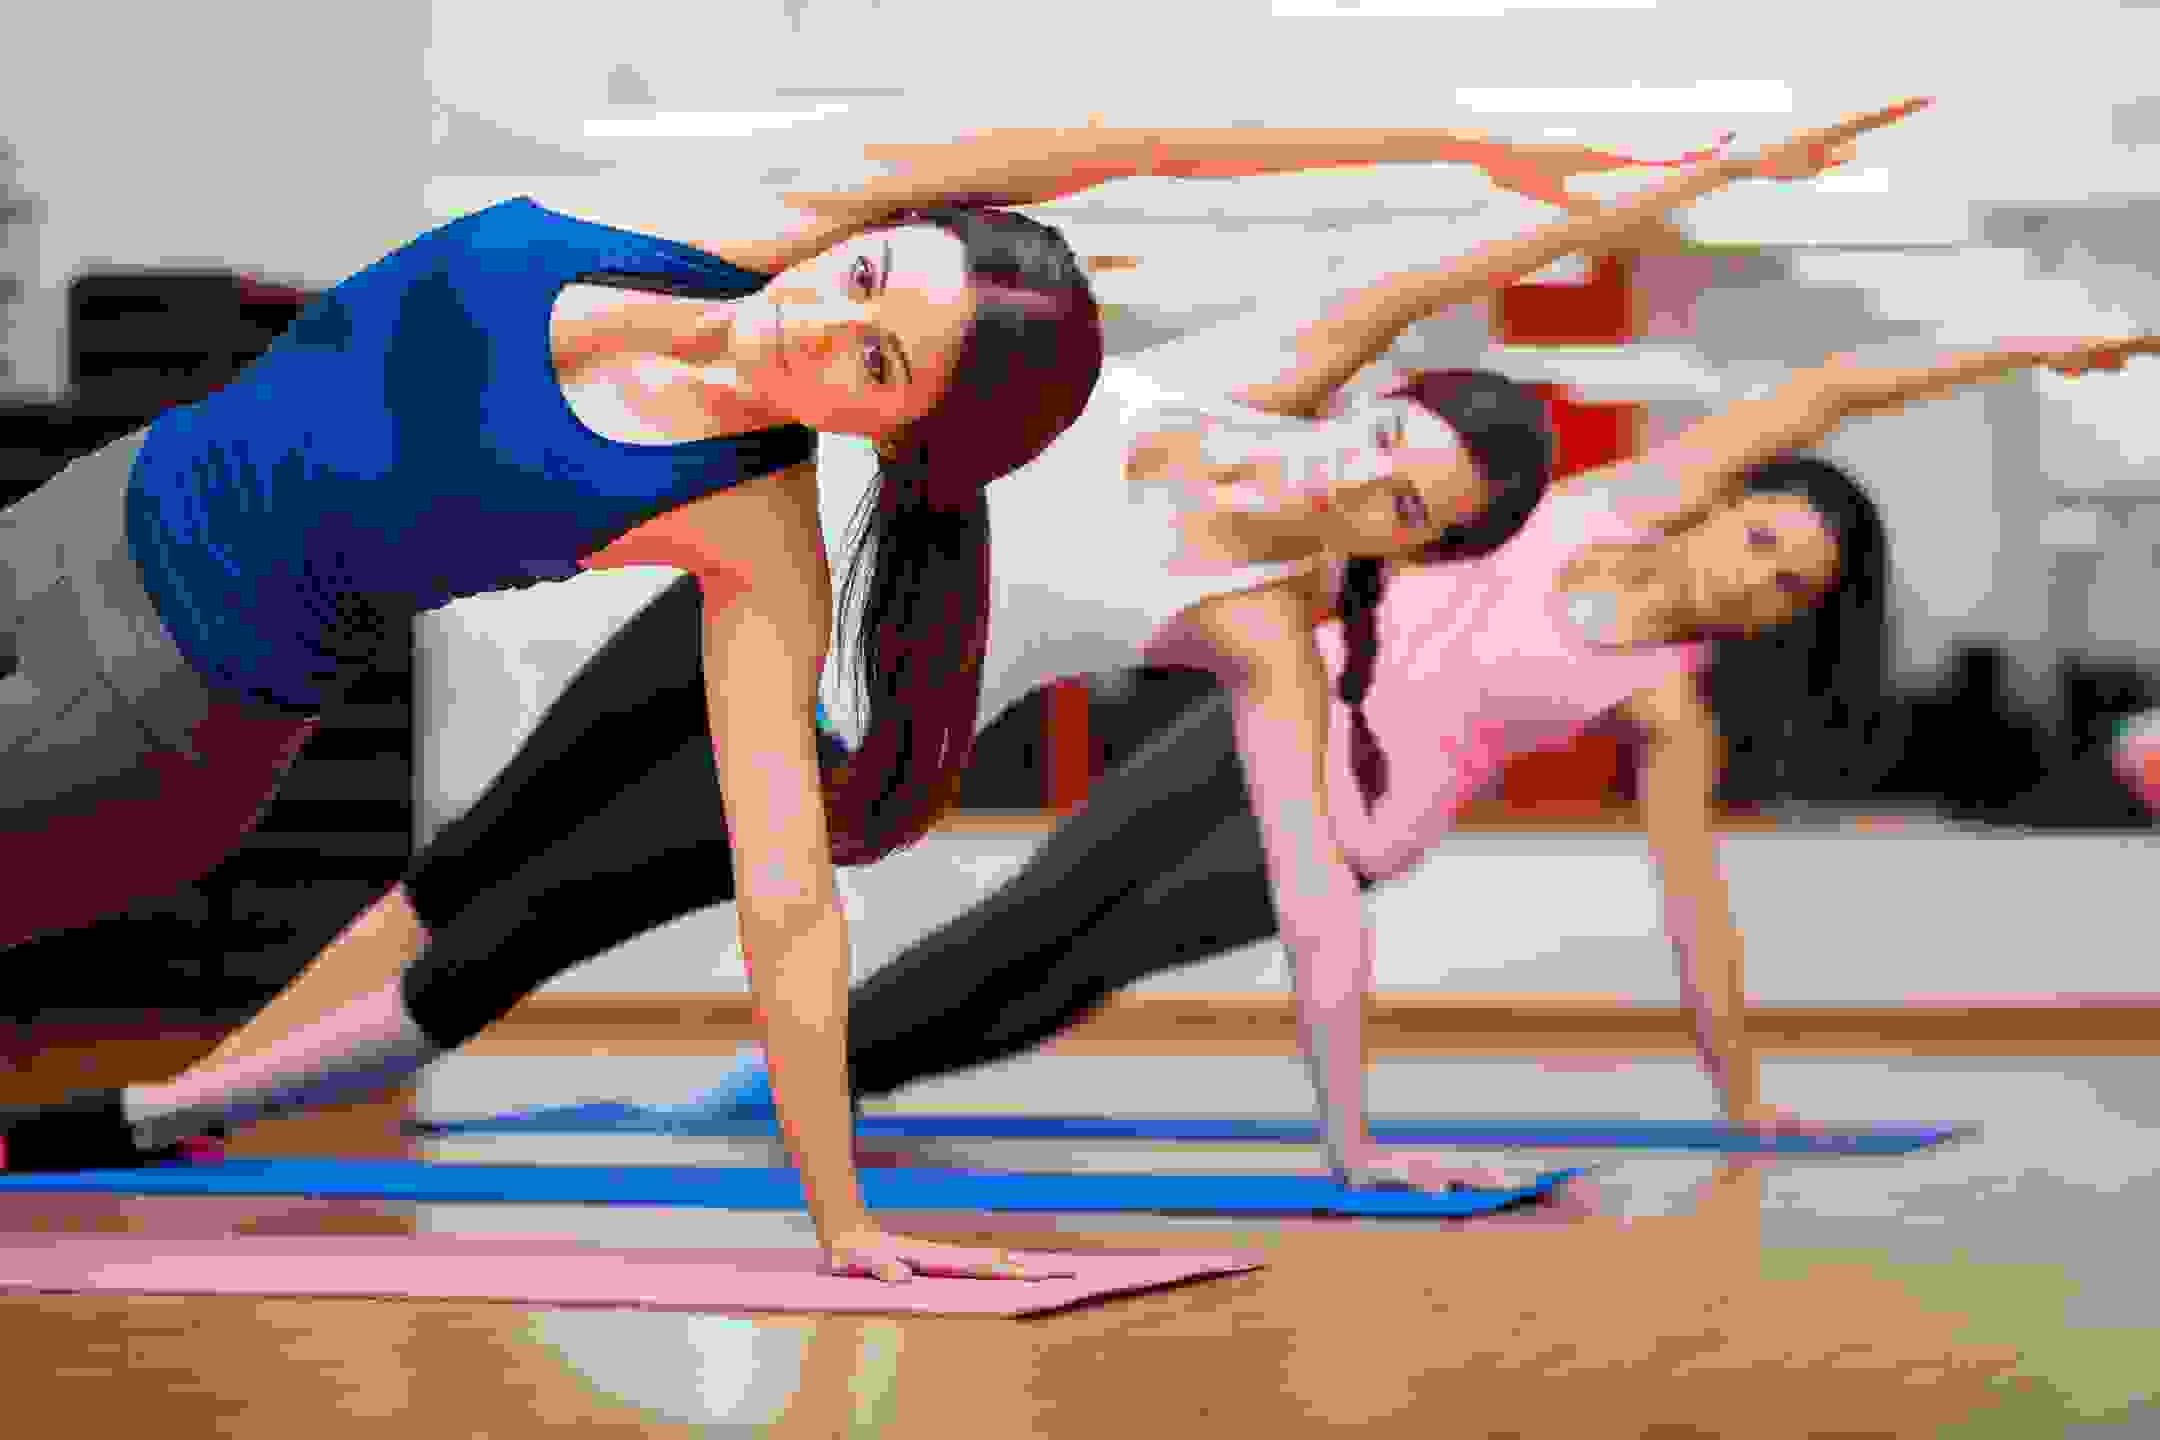 3 women doing floor exercises for health and fitness